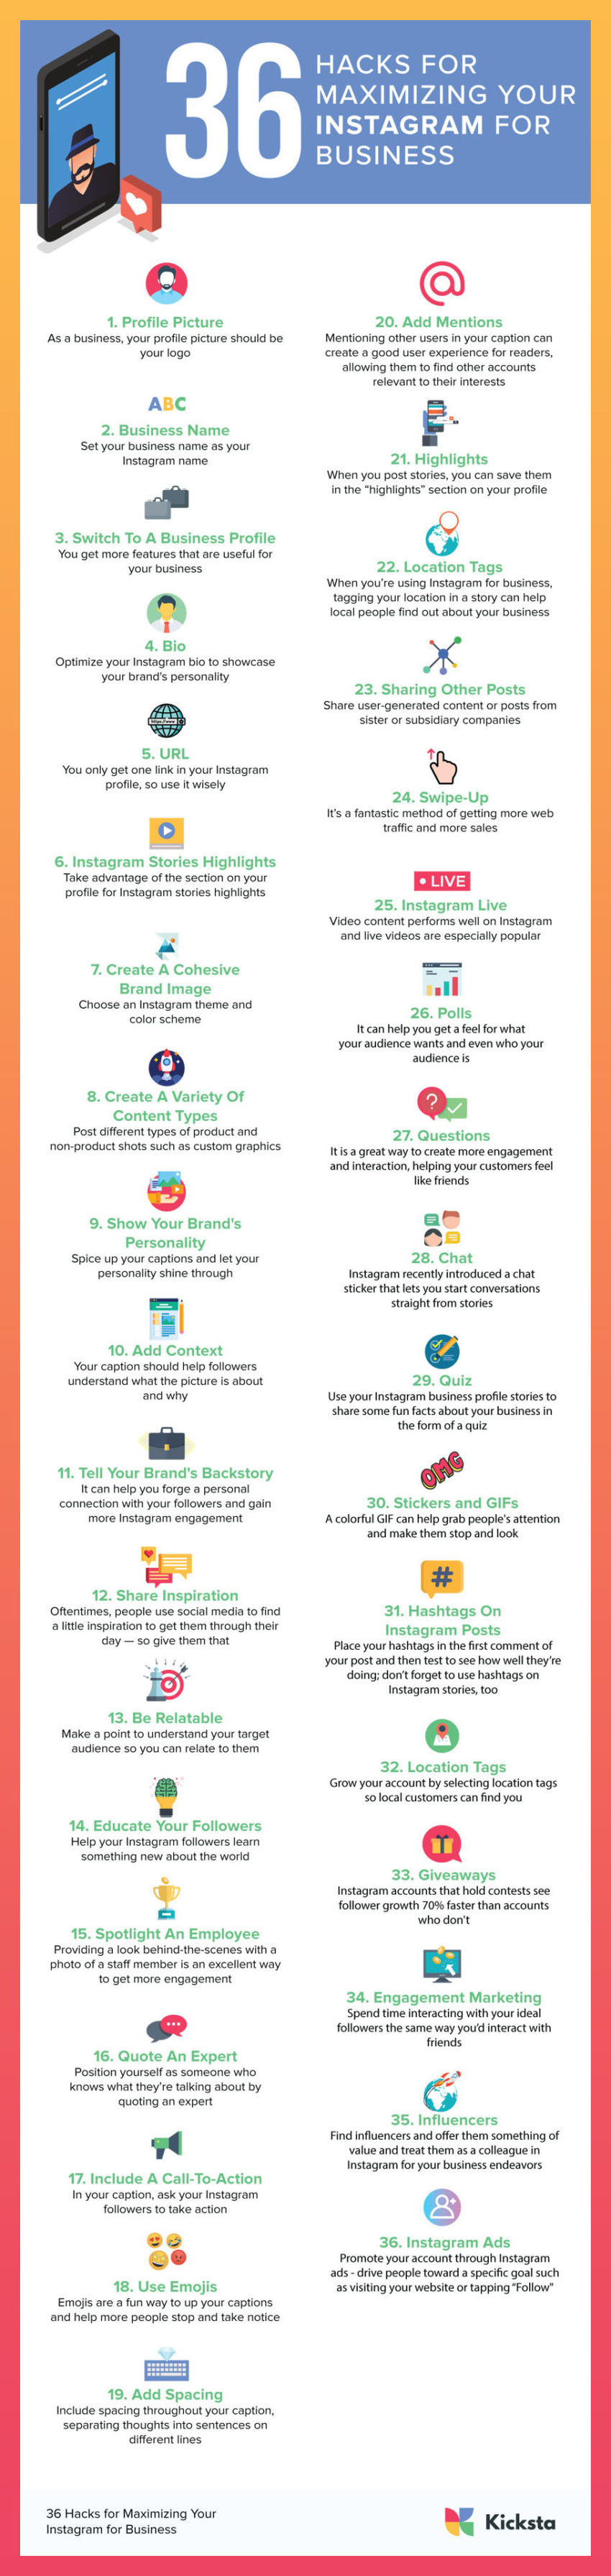 36 Instagram Hacks To Elevate Your Business In 2021 #infographic #Instagram Hacks #infographics #Instagram #Business #Business In 2021